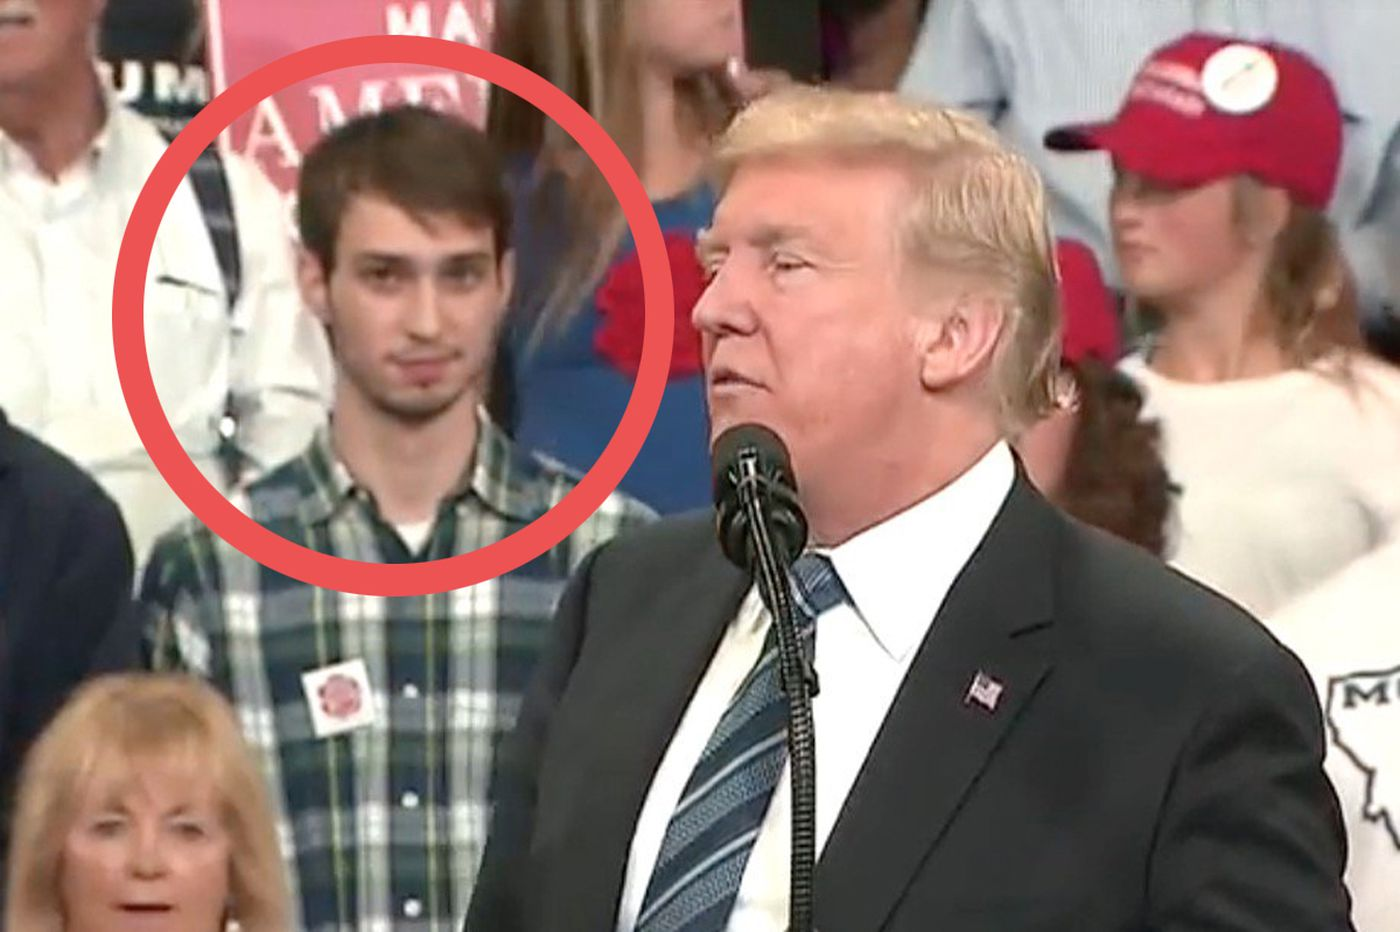 Trump rally attendee appears to mock president during his speech. Minutes later he's replaced.